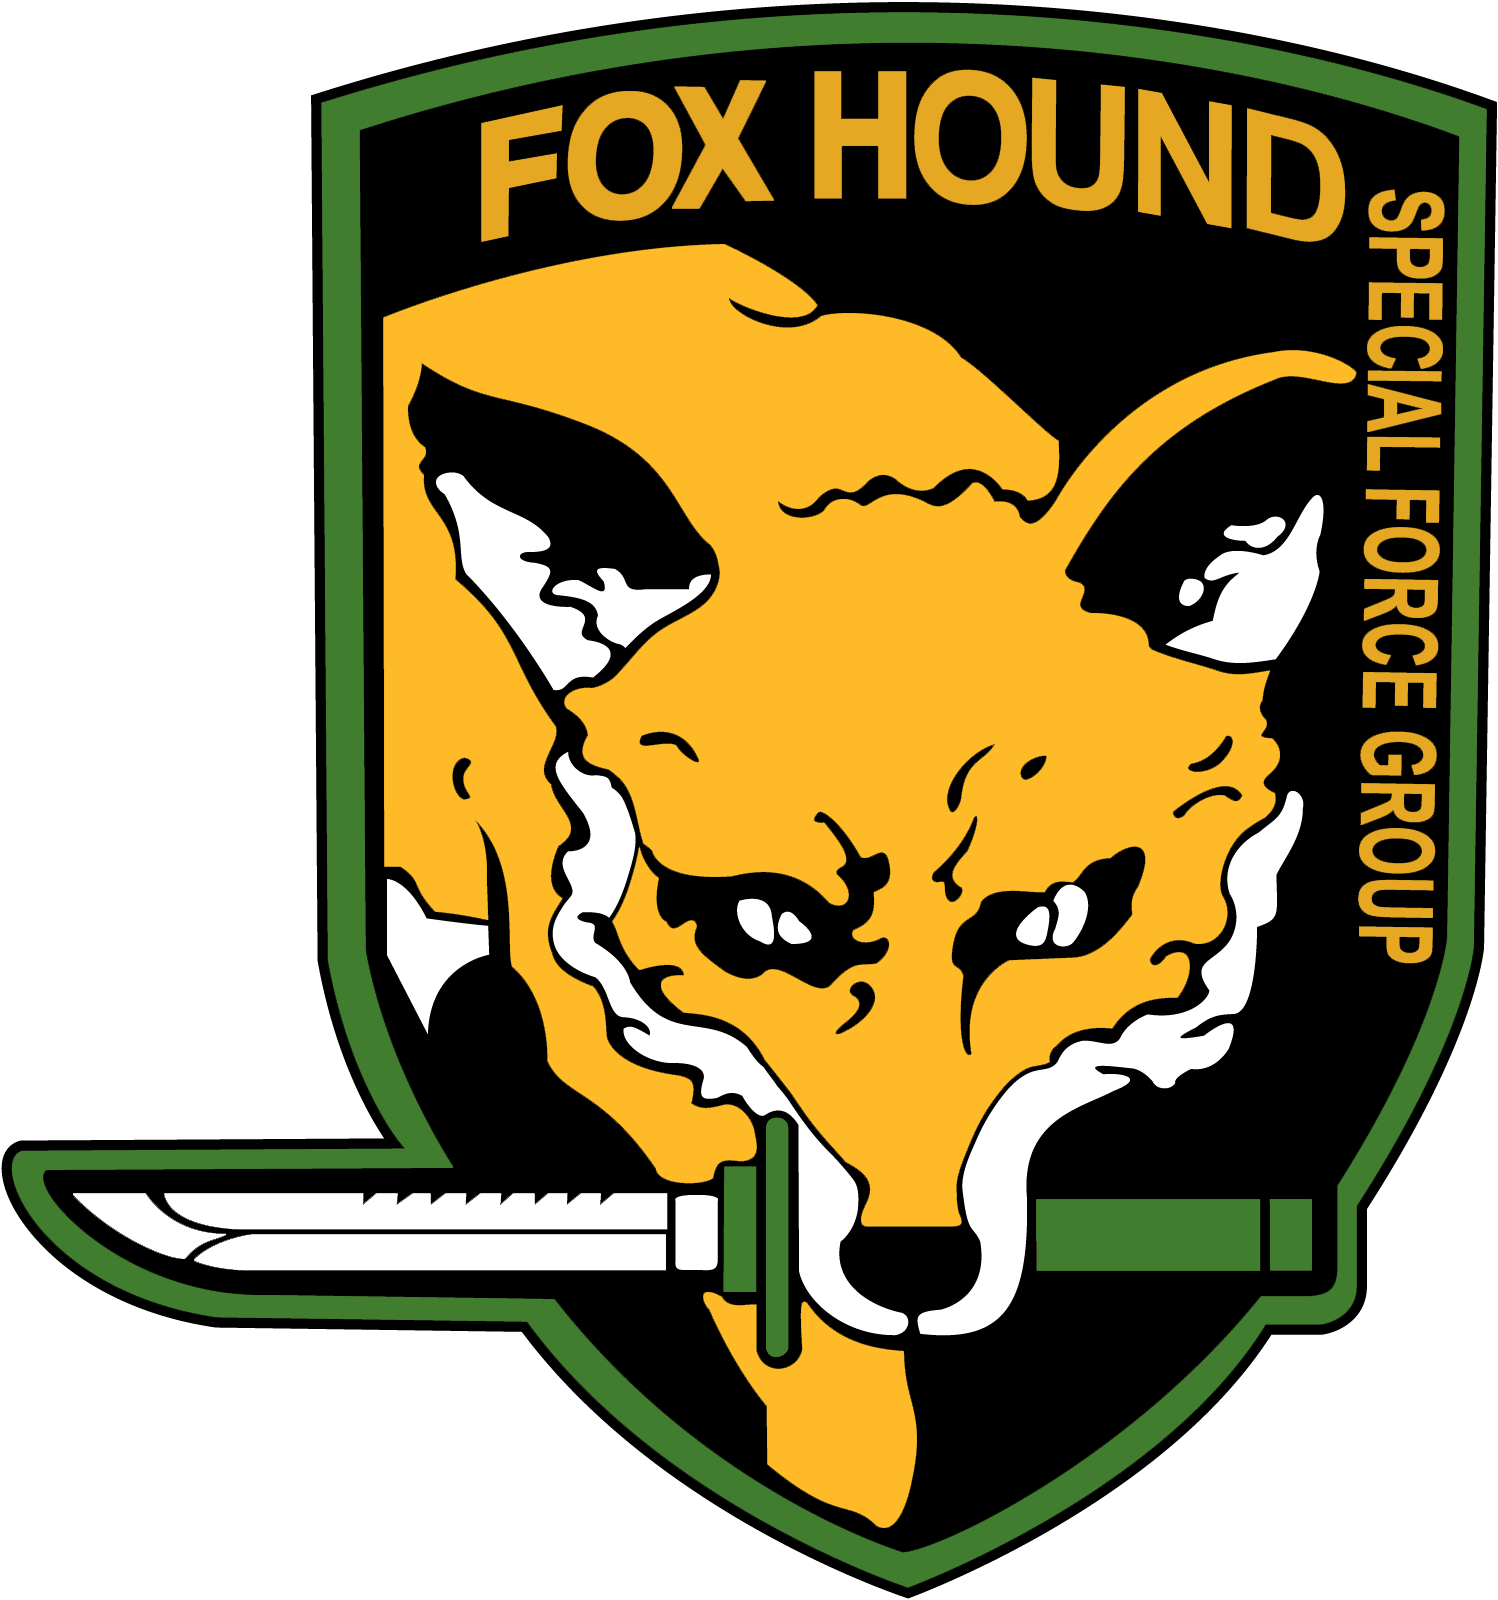 Mgs fox logo png. Image foxhound metal gear